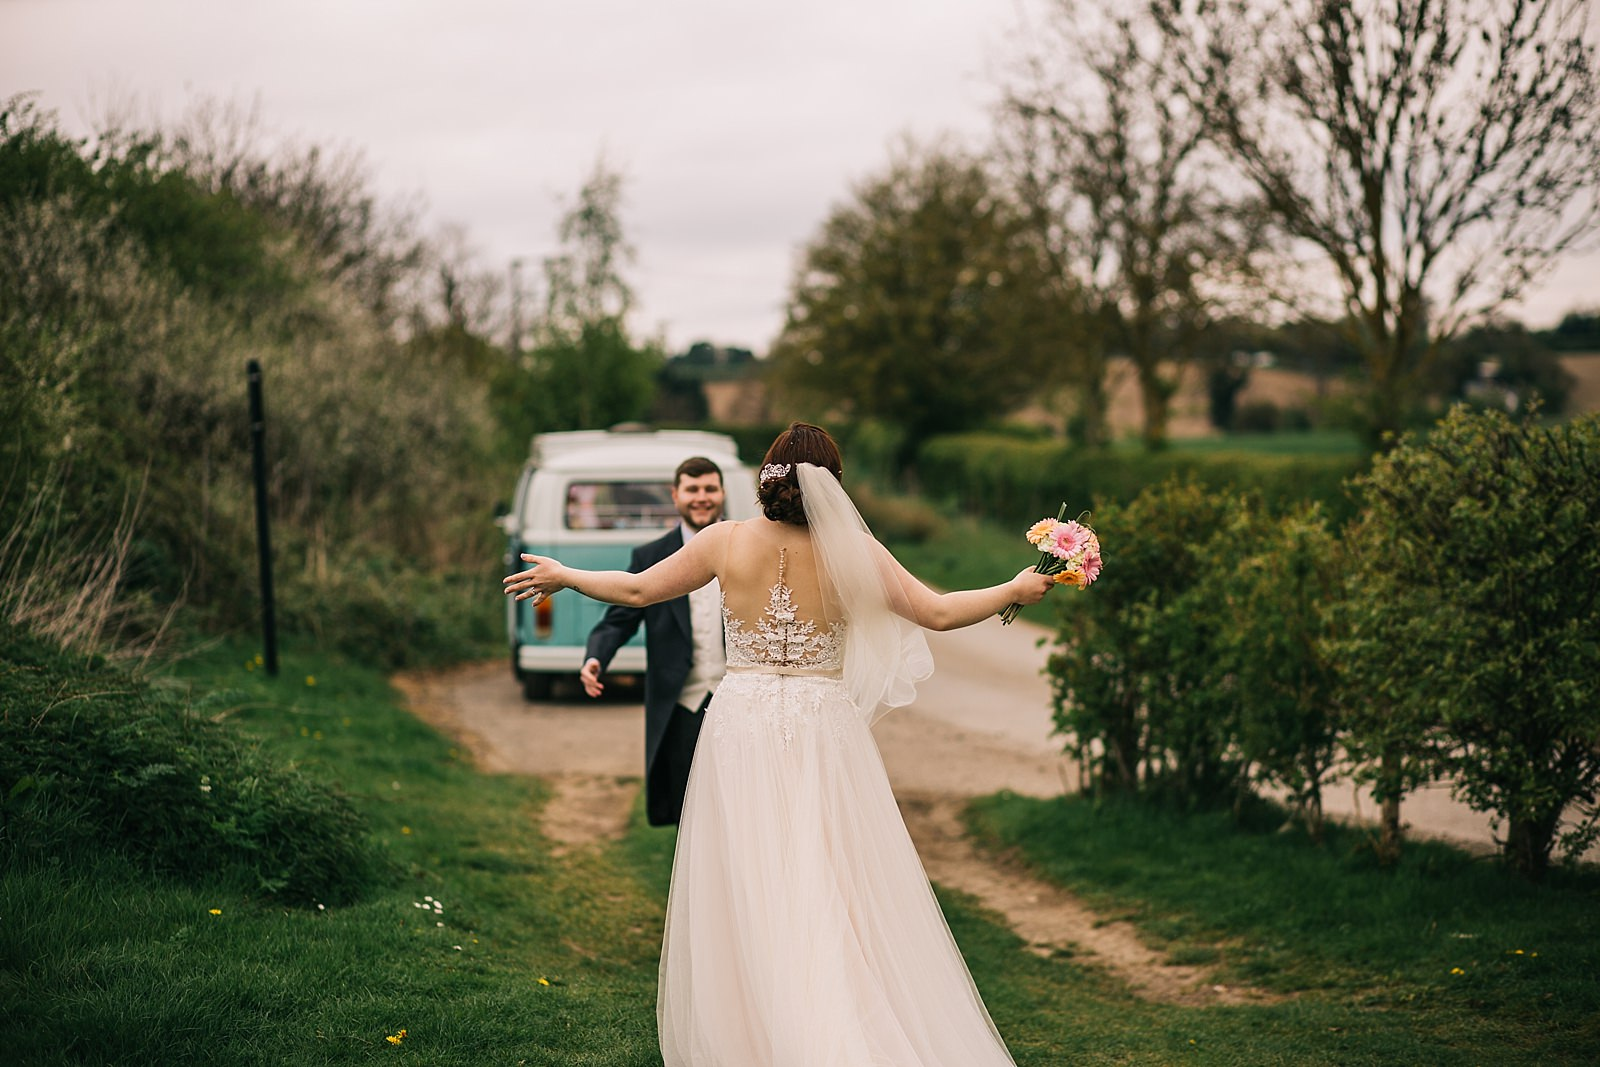 bride walking towards groom with open arms